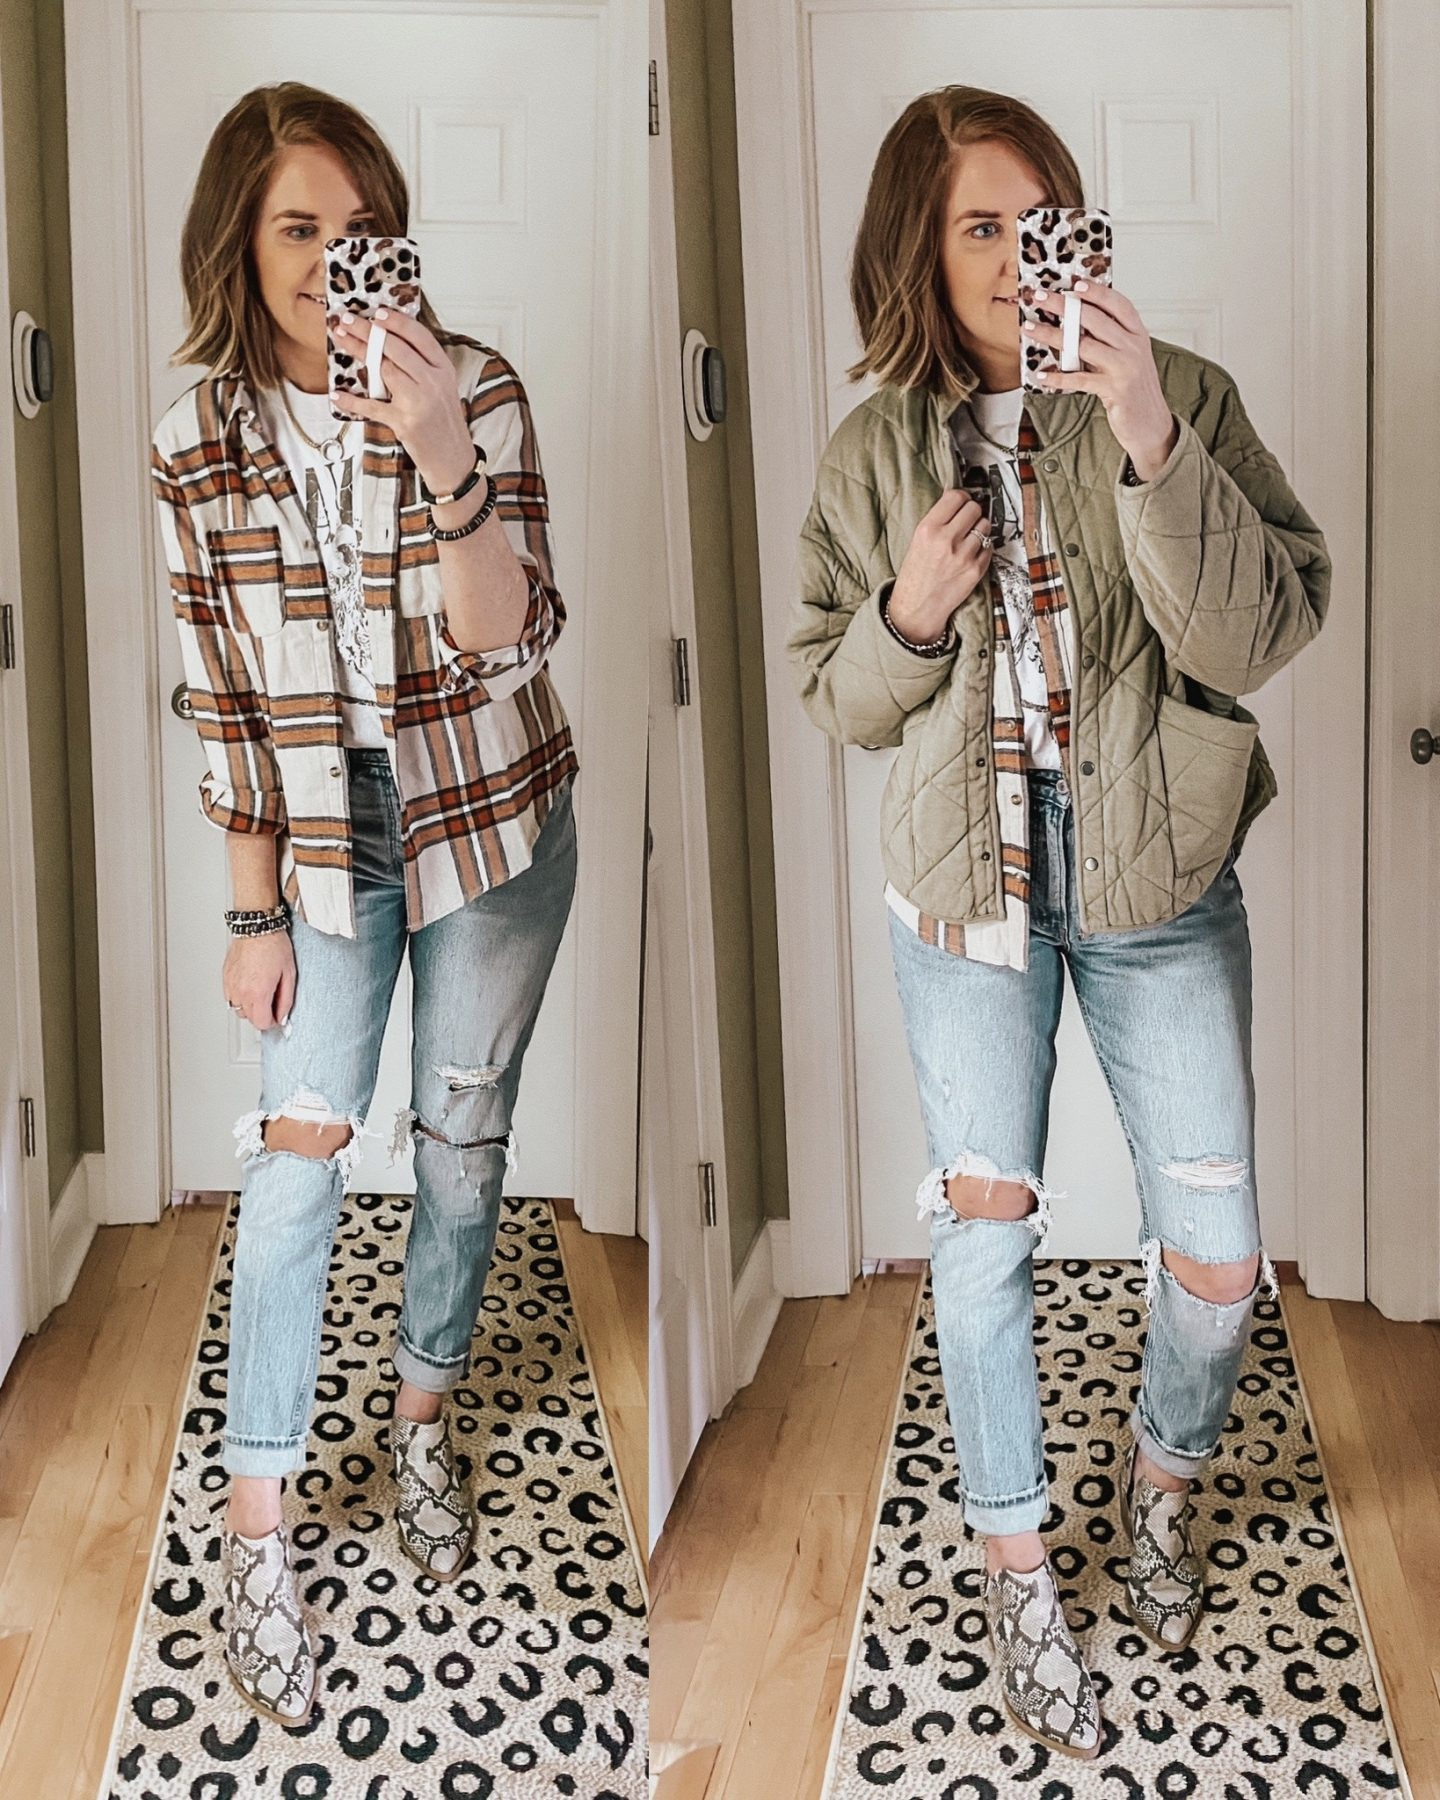 Fall Wardrobe Essentials 2020, plaid flannel, Nirvana graphic tee, Z Supply quilted jacket, snake print booties